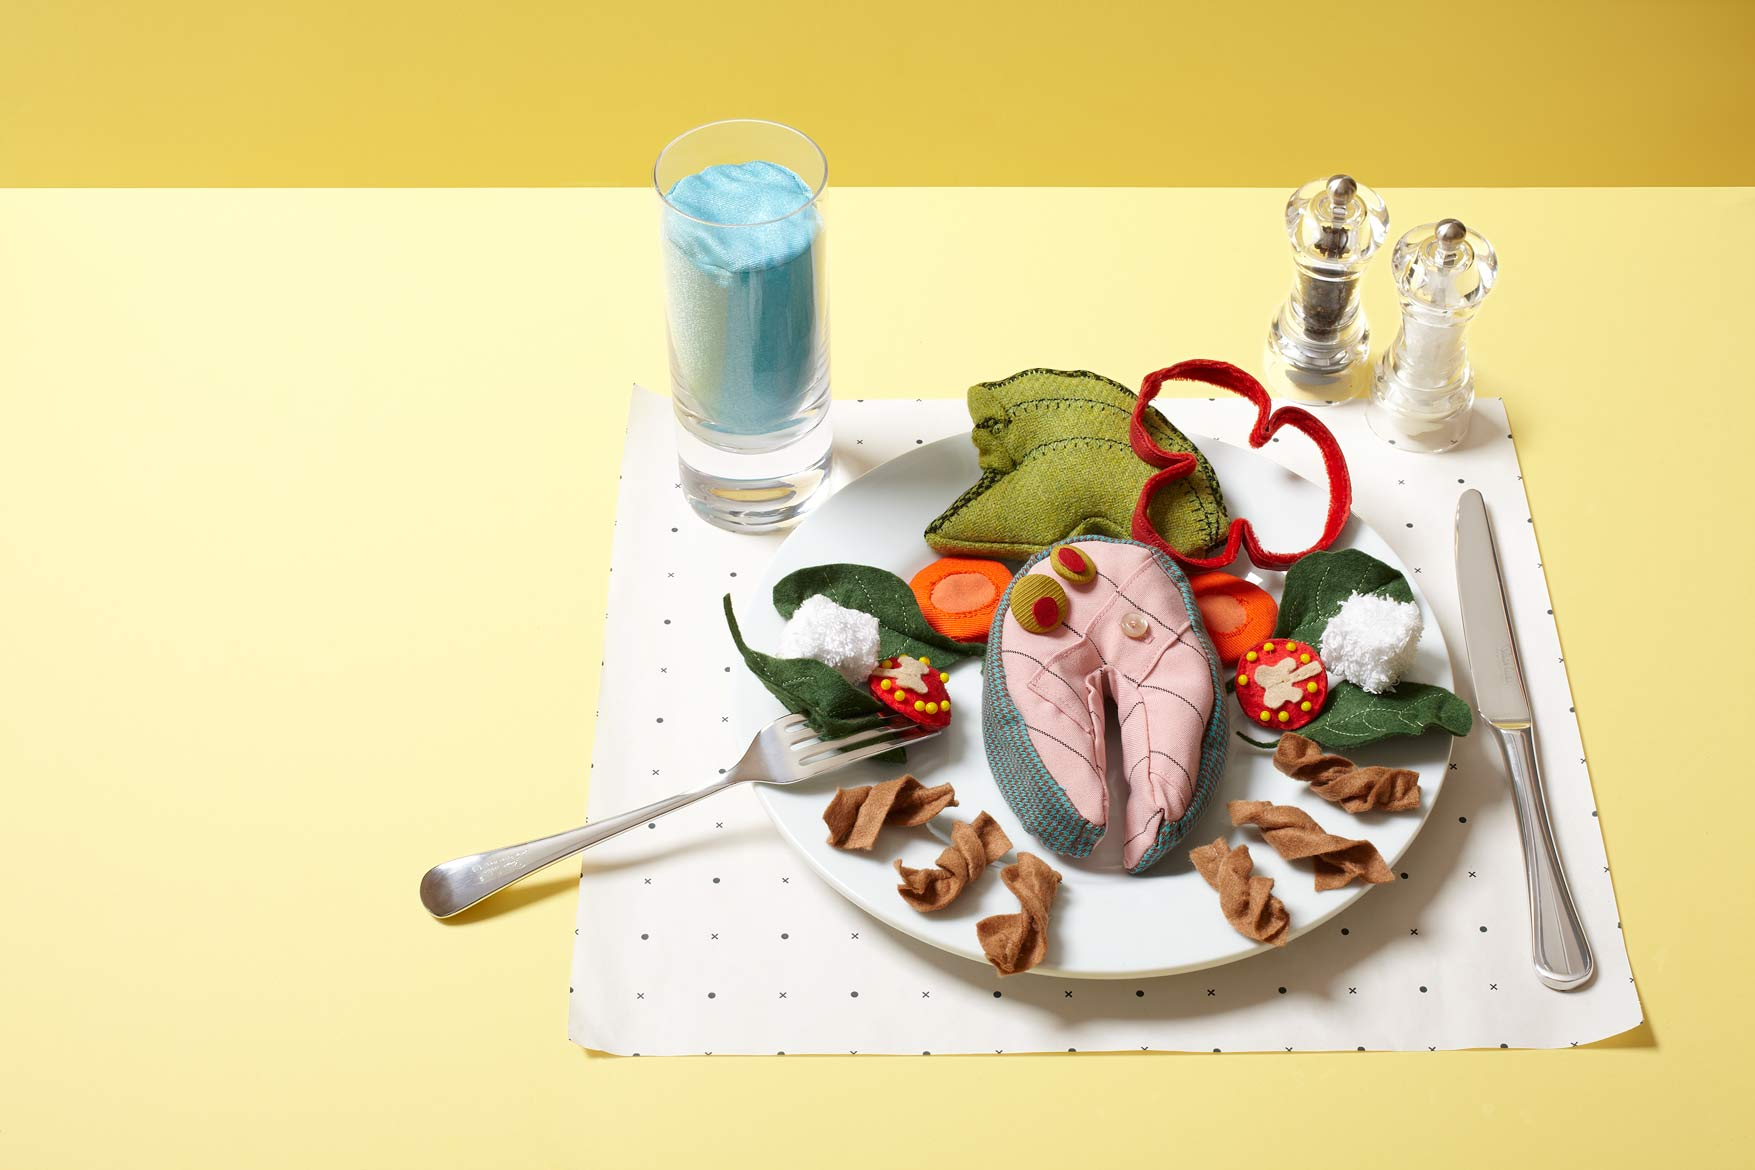 VL482_Menshealth_TailormadeFood_yellow_withpaper-r2_retouch